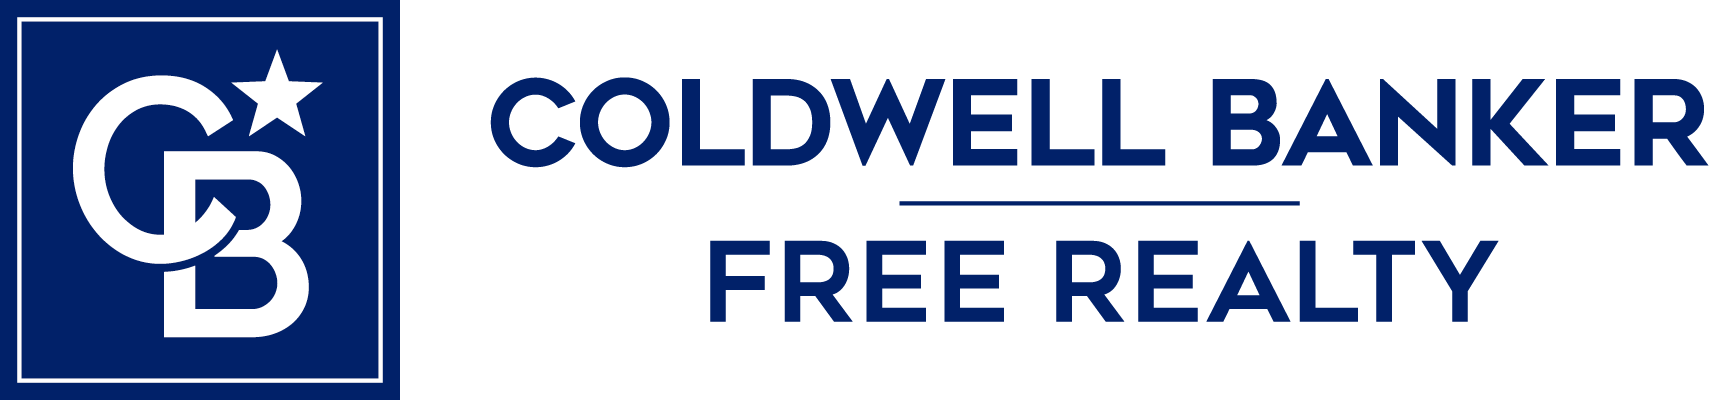 coldwell-banker-1.png